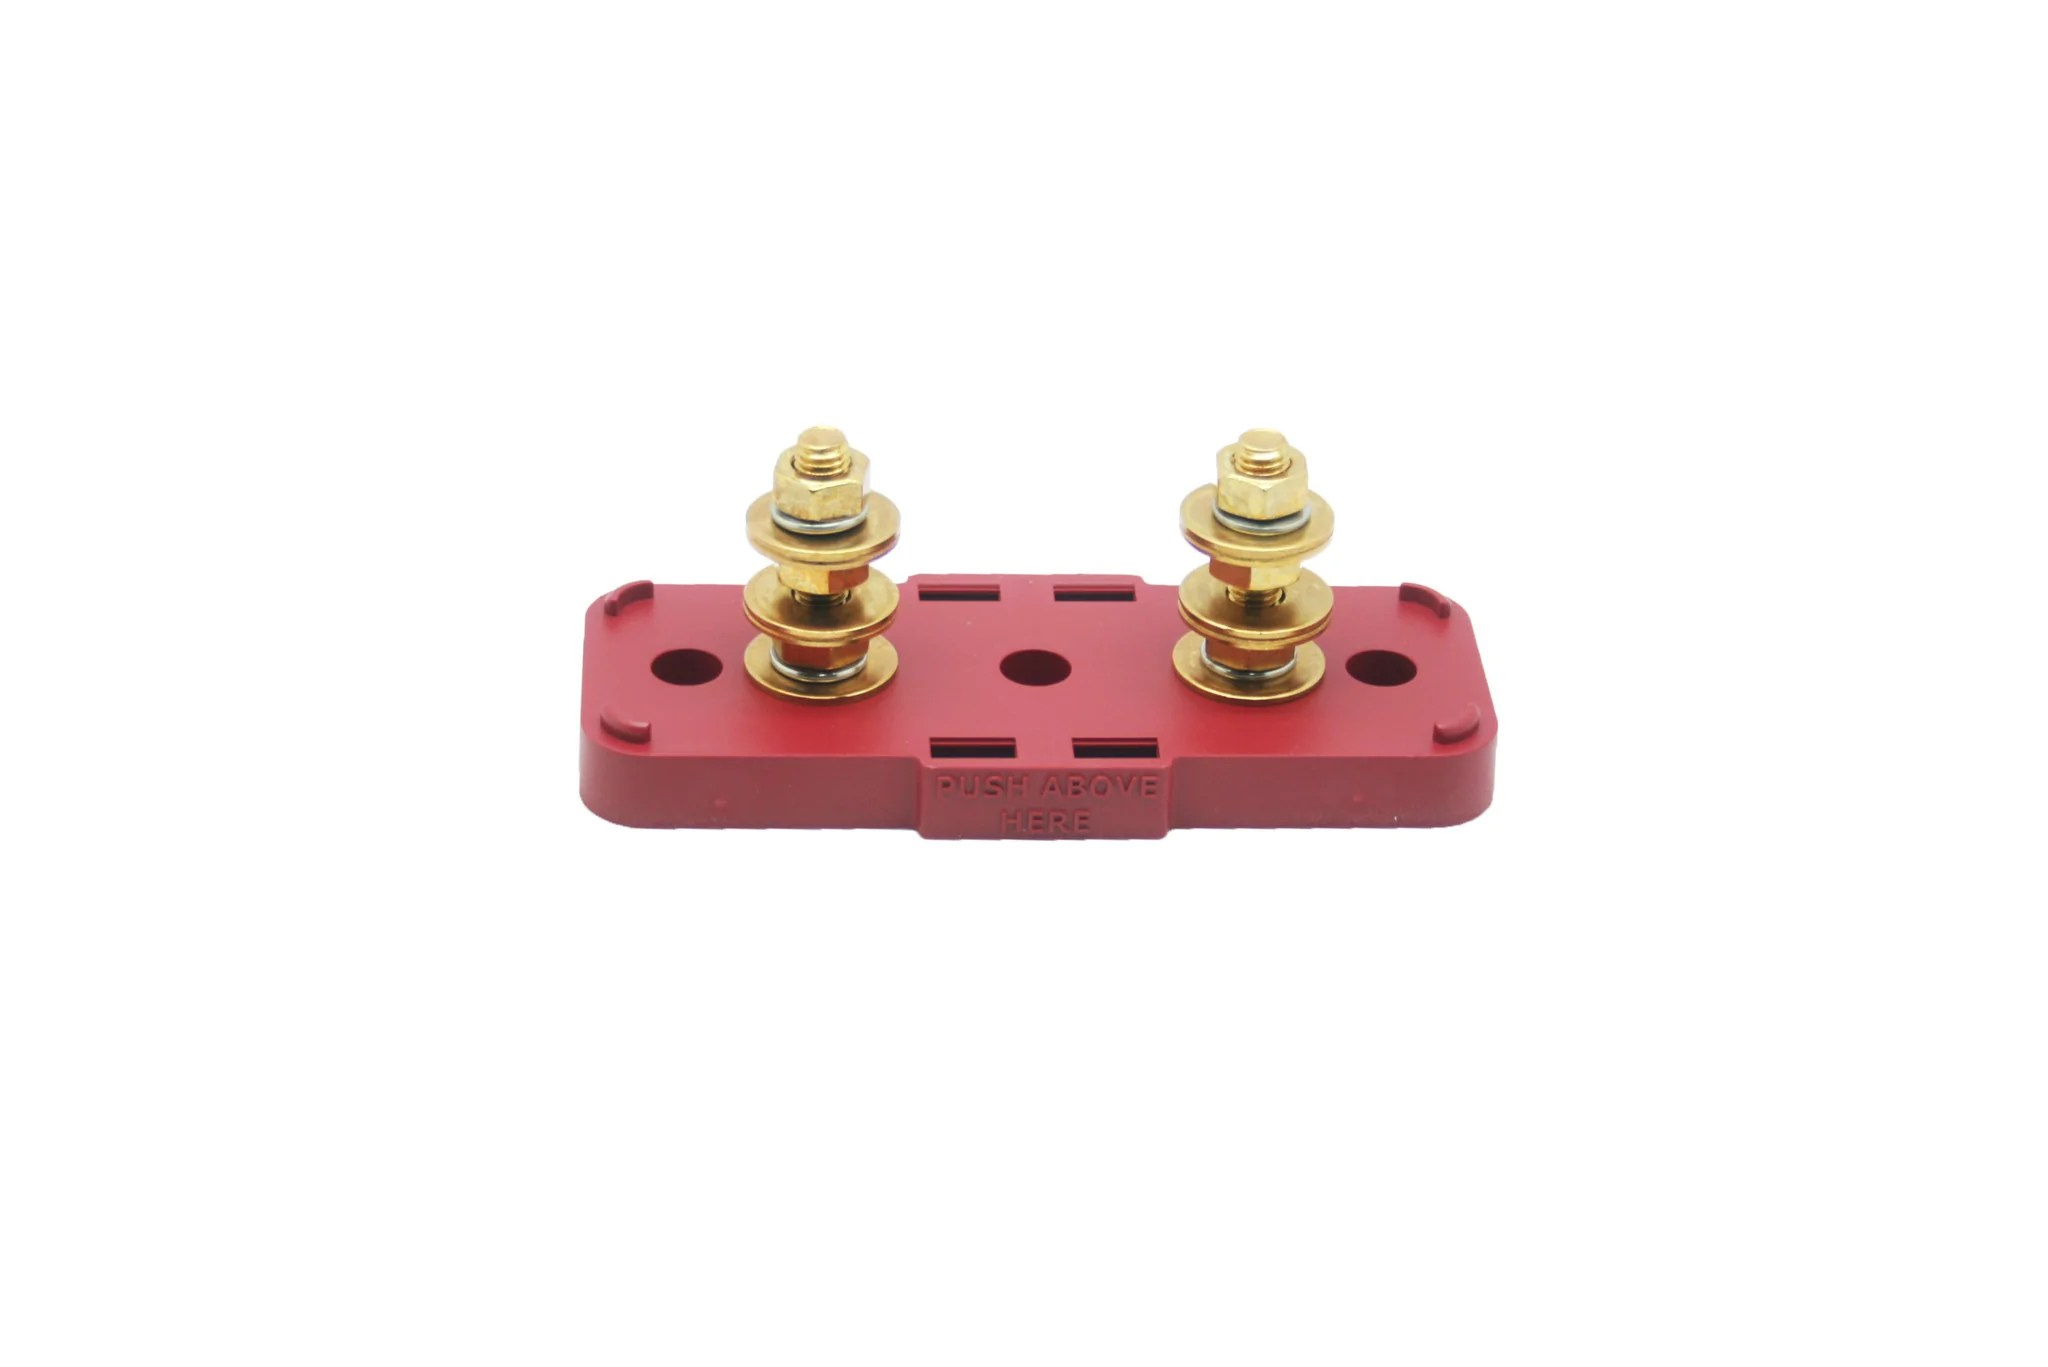 medium resolution of gold plated fuse holders m8 up to 500a m12 up to 1000a